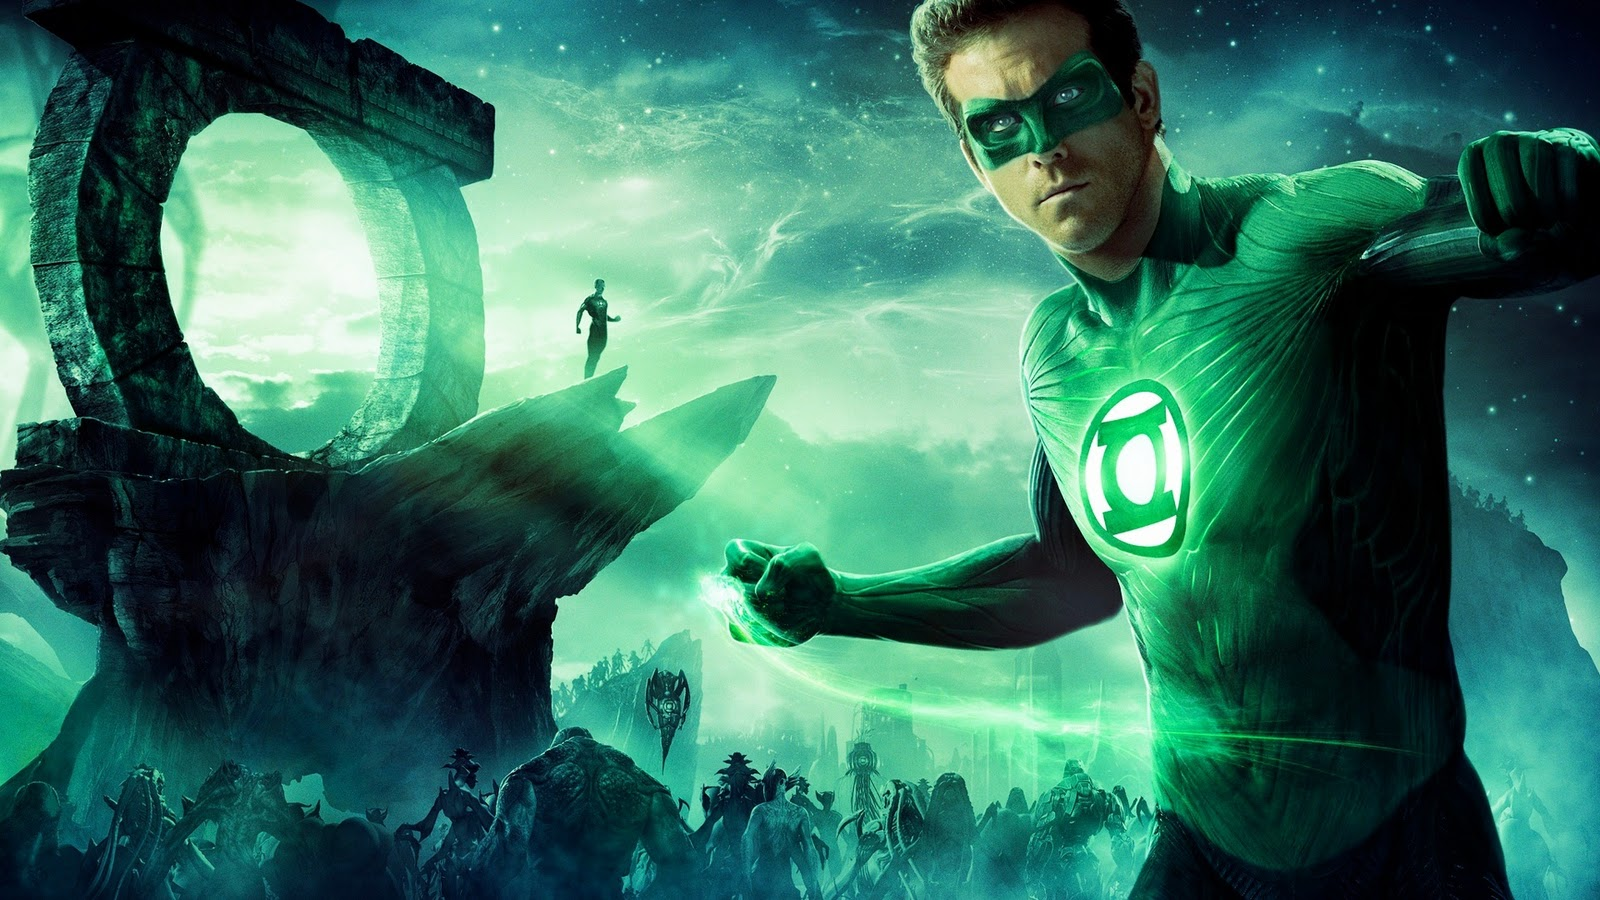 http://1.bp.blogspot.com/_hPtbiewpPkI/TVD4DvFIwpI/AAAAAAAAAMg/1NgD3lxMCRE/s1600/2011-Green-Lantern-Movie-Wallpaper-Desktop-HD-1920x1080.jpg